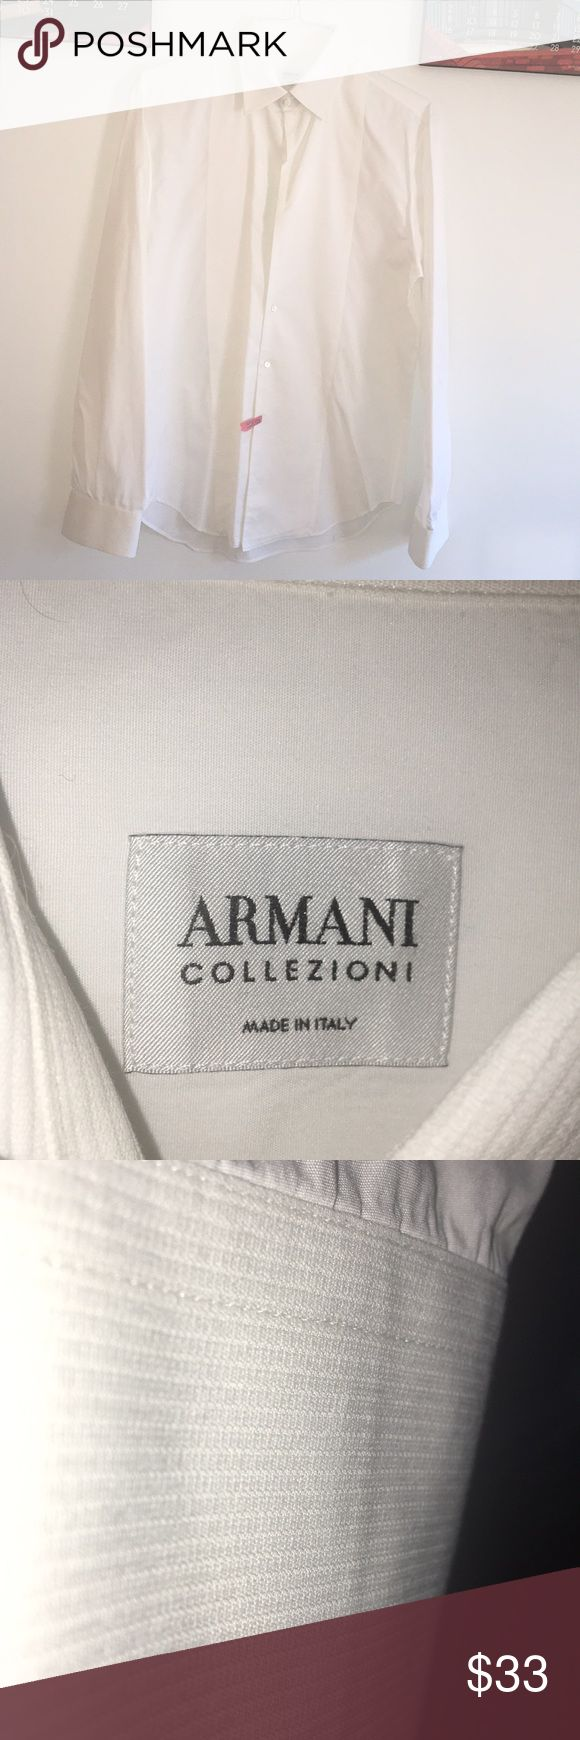 Men's Armani shirt( collezioni). Made in Italy. Lovely men's Armani colliezioni shirt. Made in Italy. Tuxedo style. Note pics. White with tuxedo look down front / sleeves, collar . Sleeves require cuff links. And three buttons are attached at bottom, bc first three are not there. This was worn once and just had it dry cleaned.. prestige condition Armani Collezioni Shirts Dress Shirts